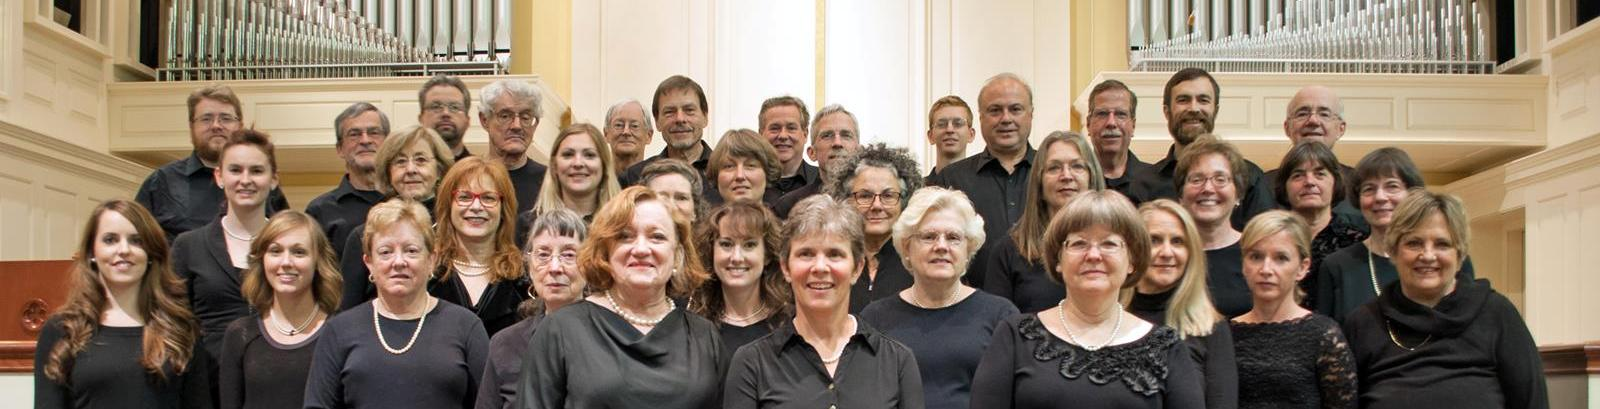 2014 Central Virginia Masterworks Chorale (Photo  by Diane  Stoakley)